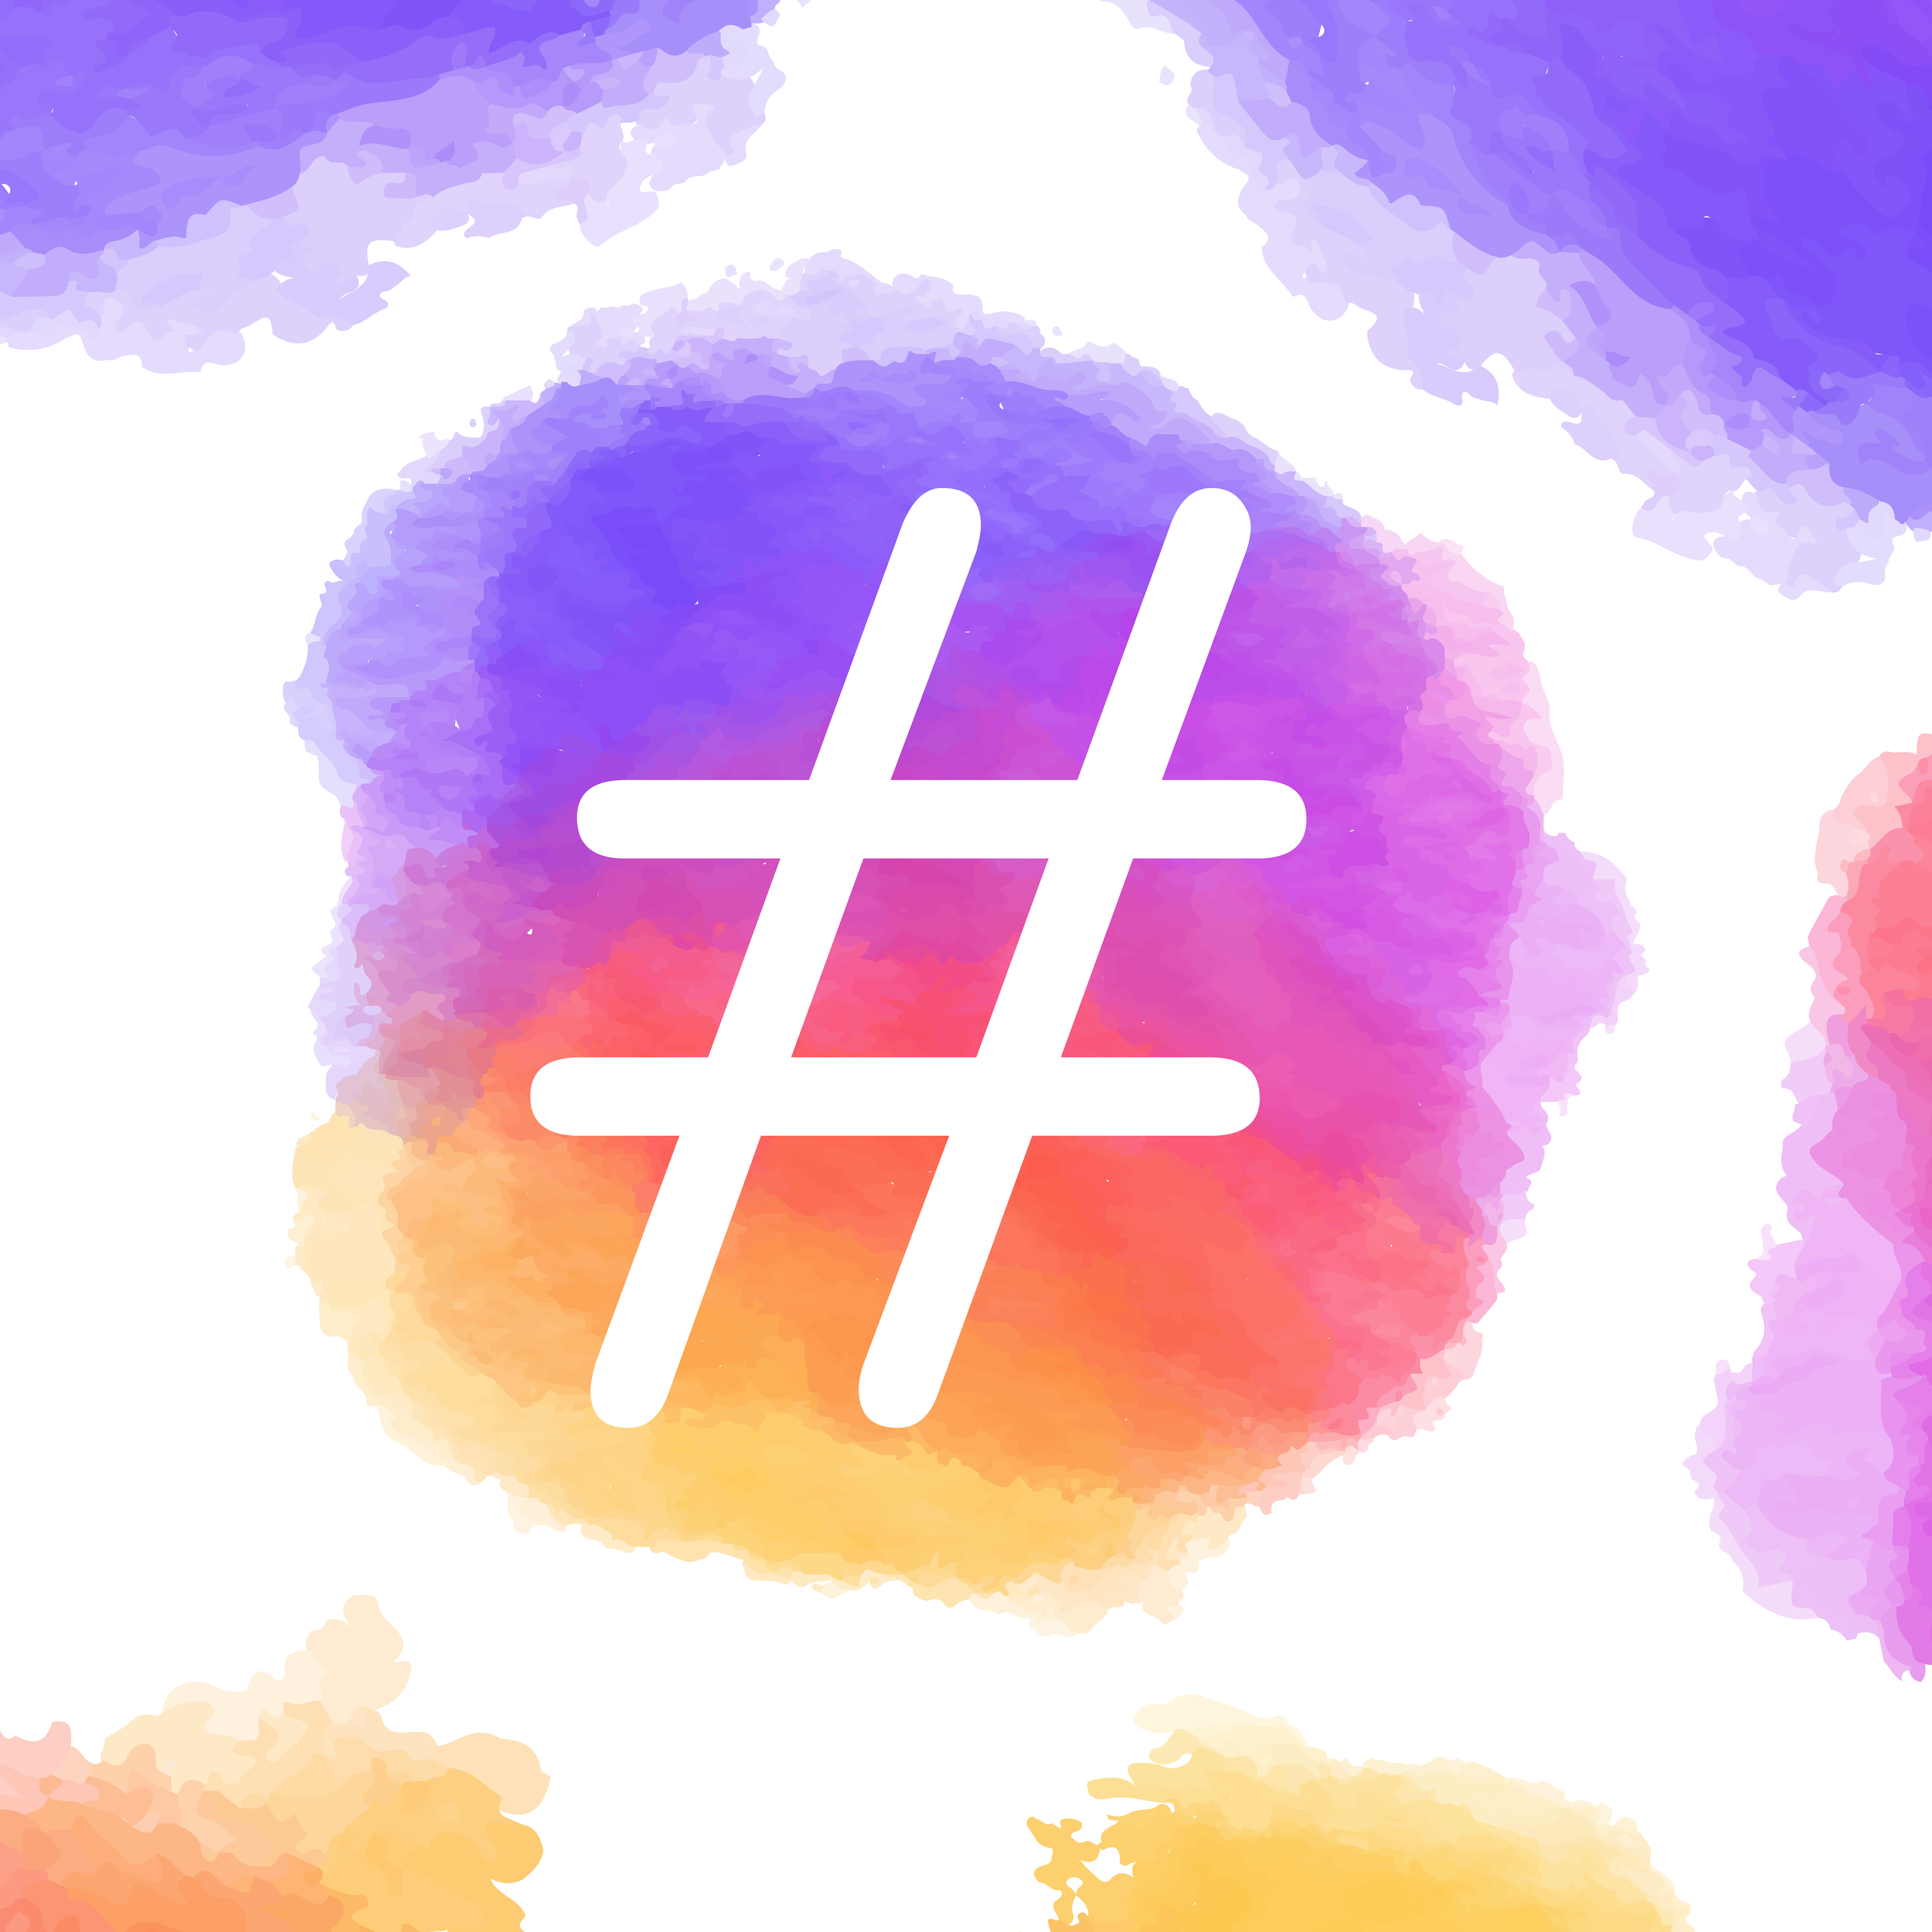 track hashtags on Instagram